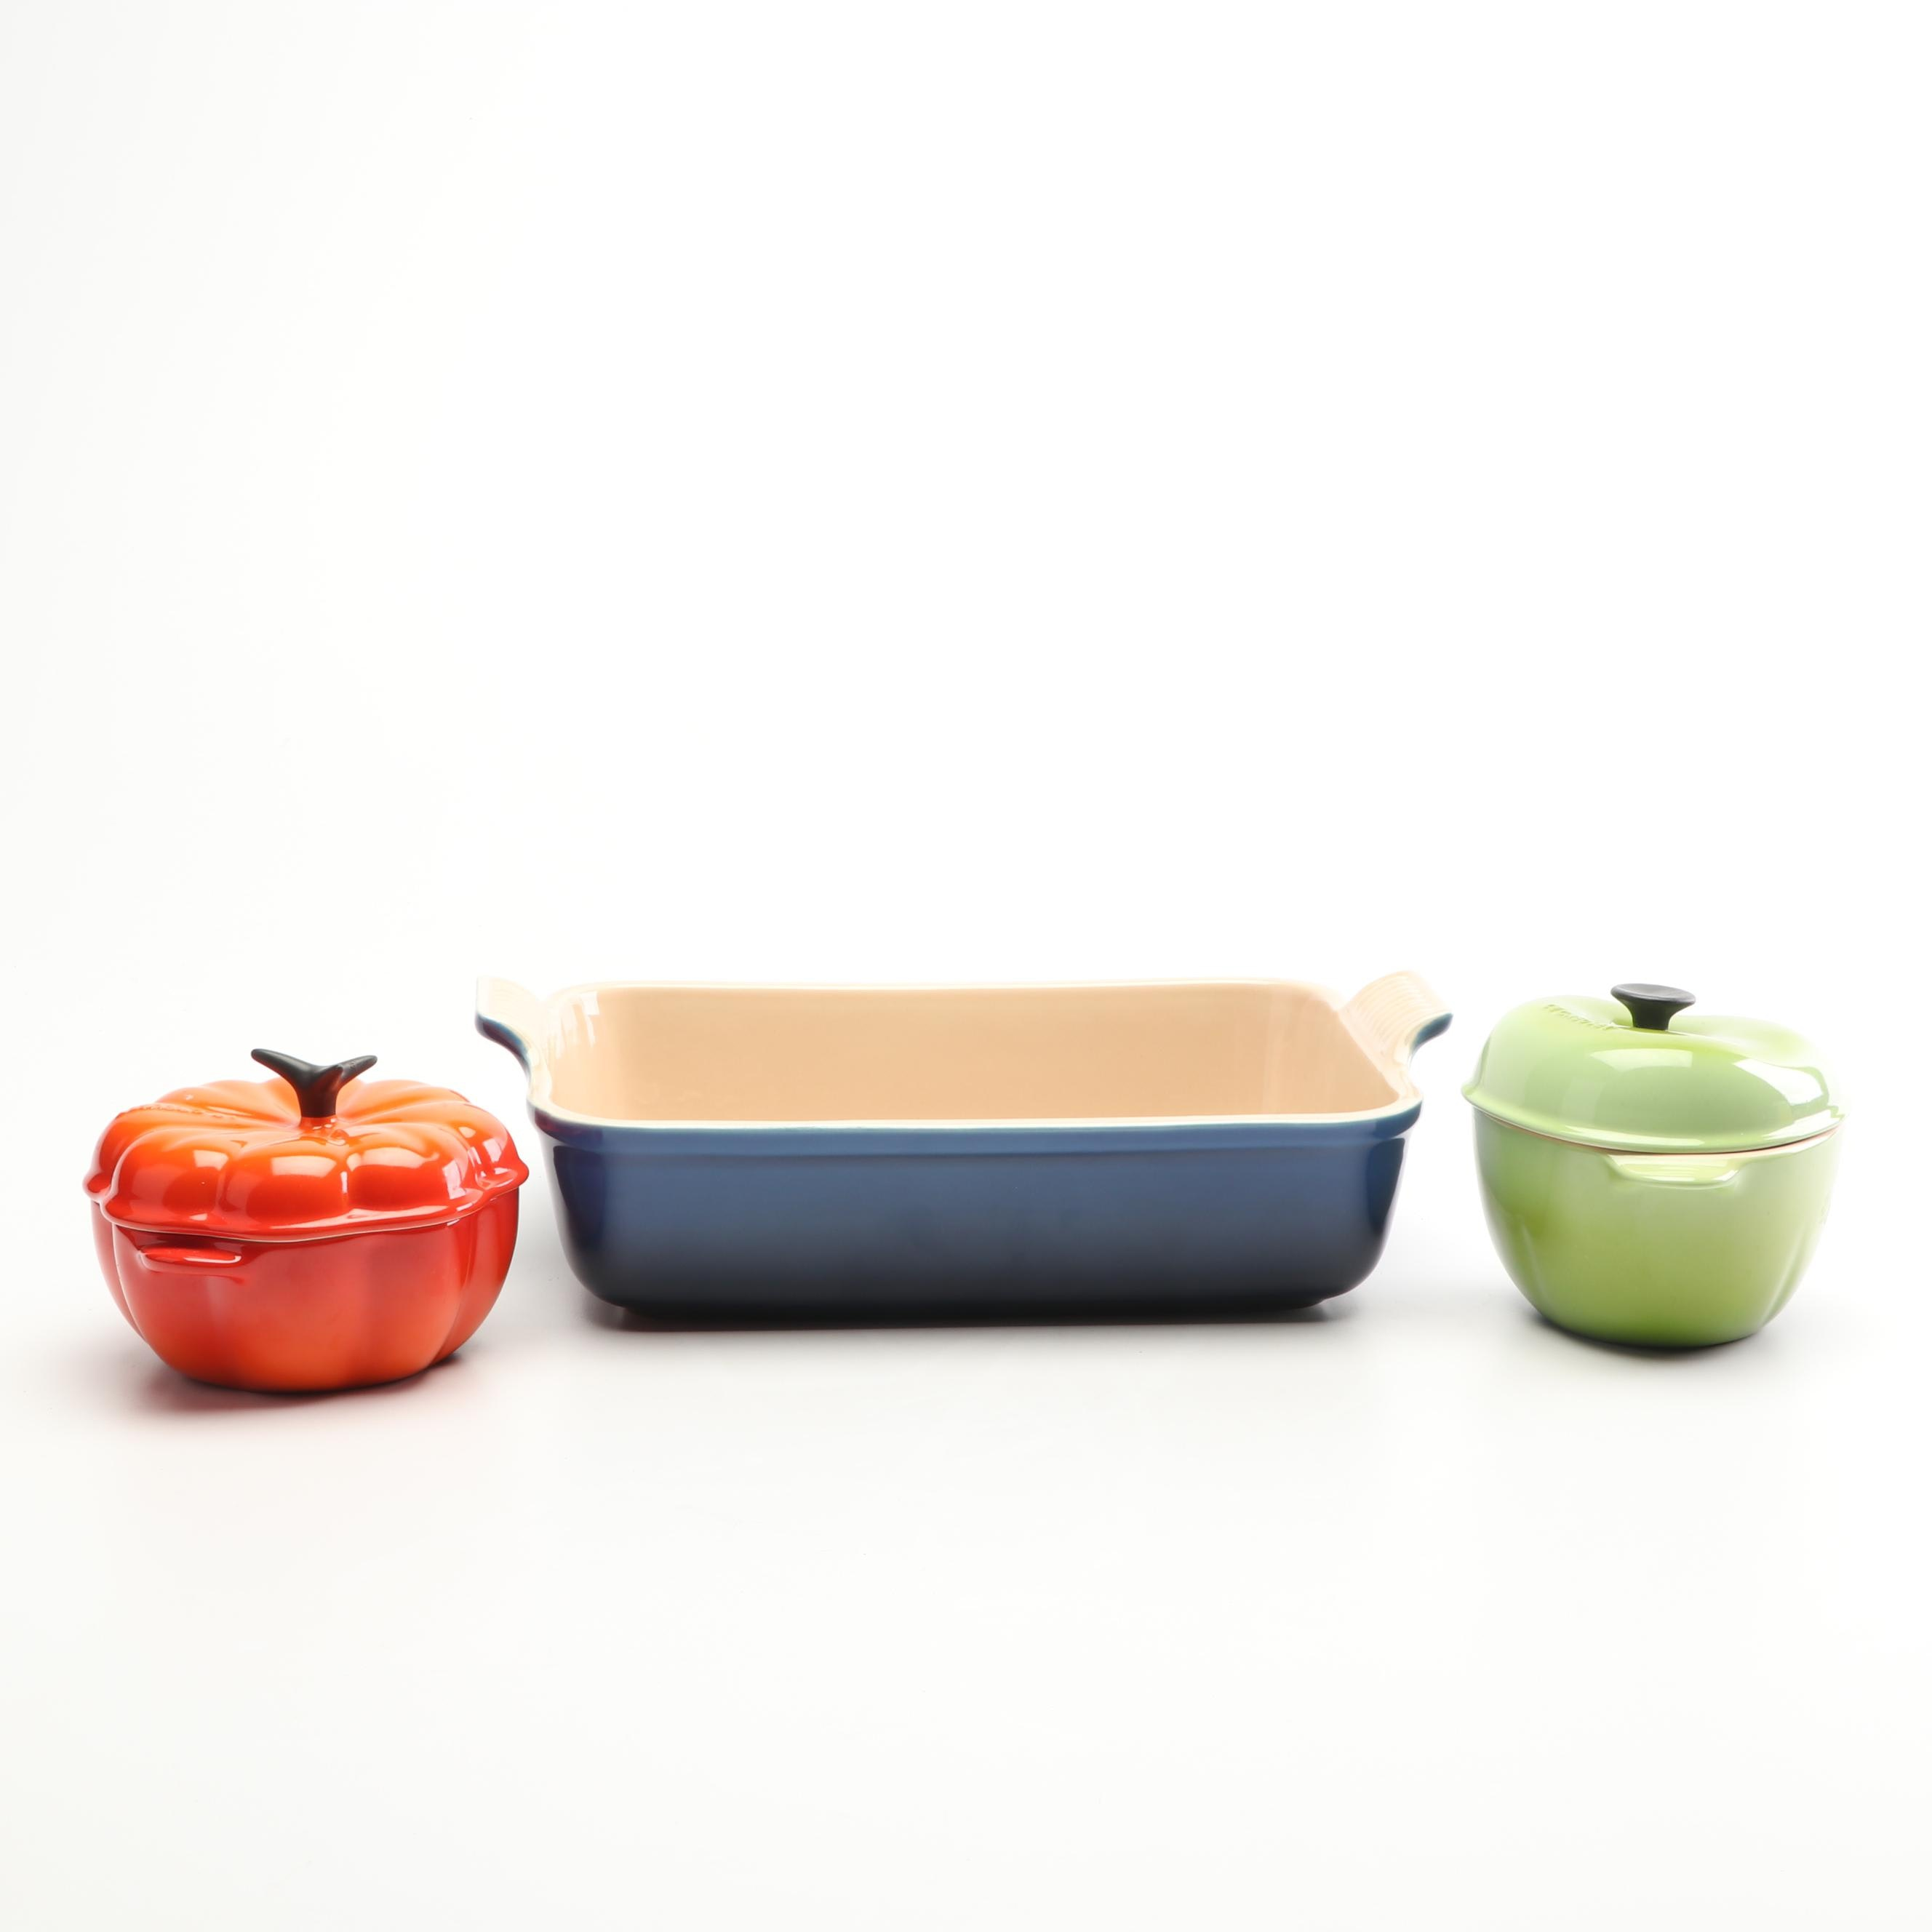 Le Creuset Pumpkin and Apple Cocottes with Rectangular Baker